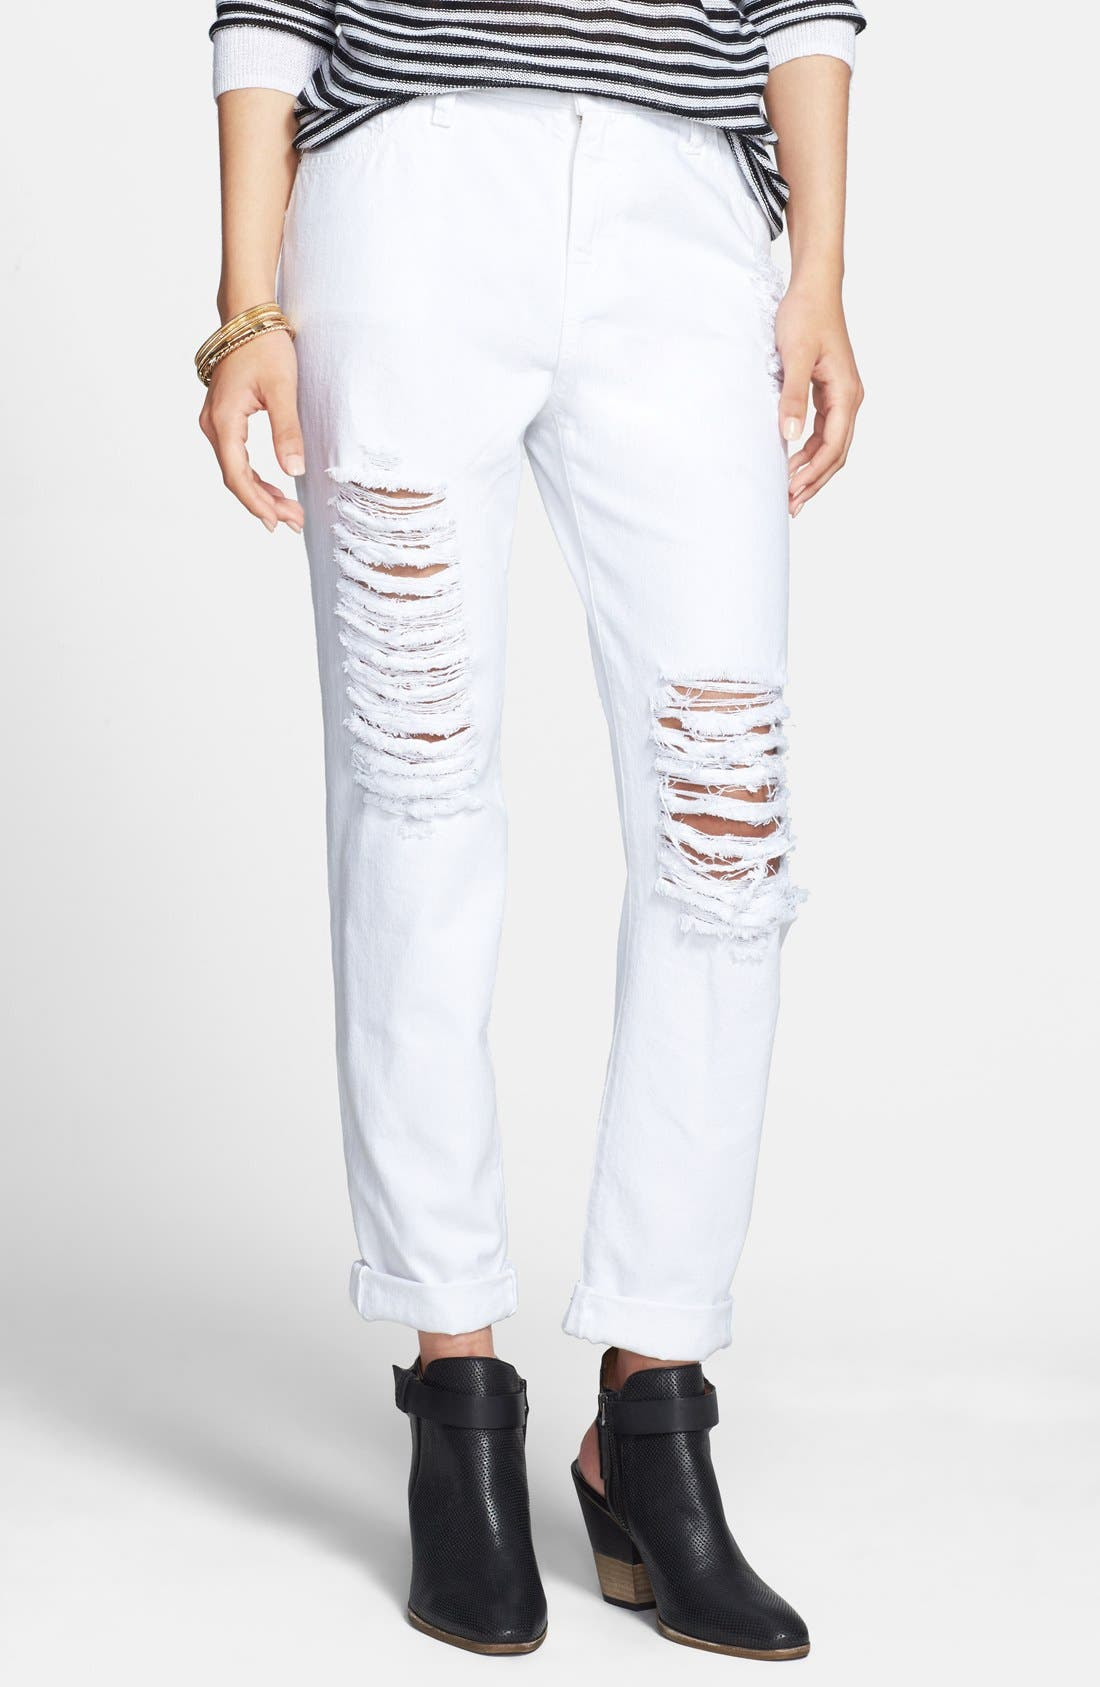 Alternate Image 1 Selected - SP Black Shredded Boyfriend Jeans (White) (Juniors)